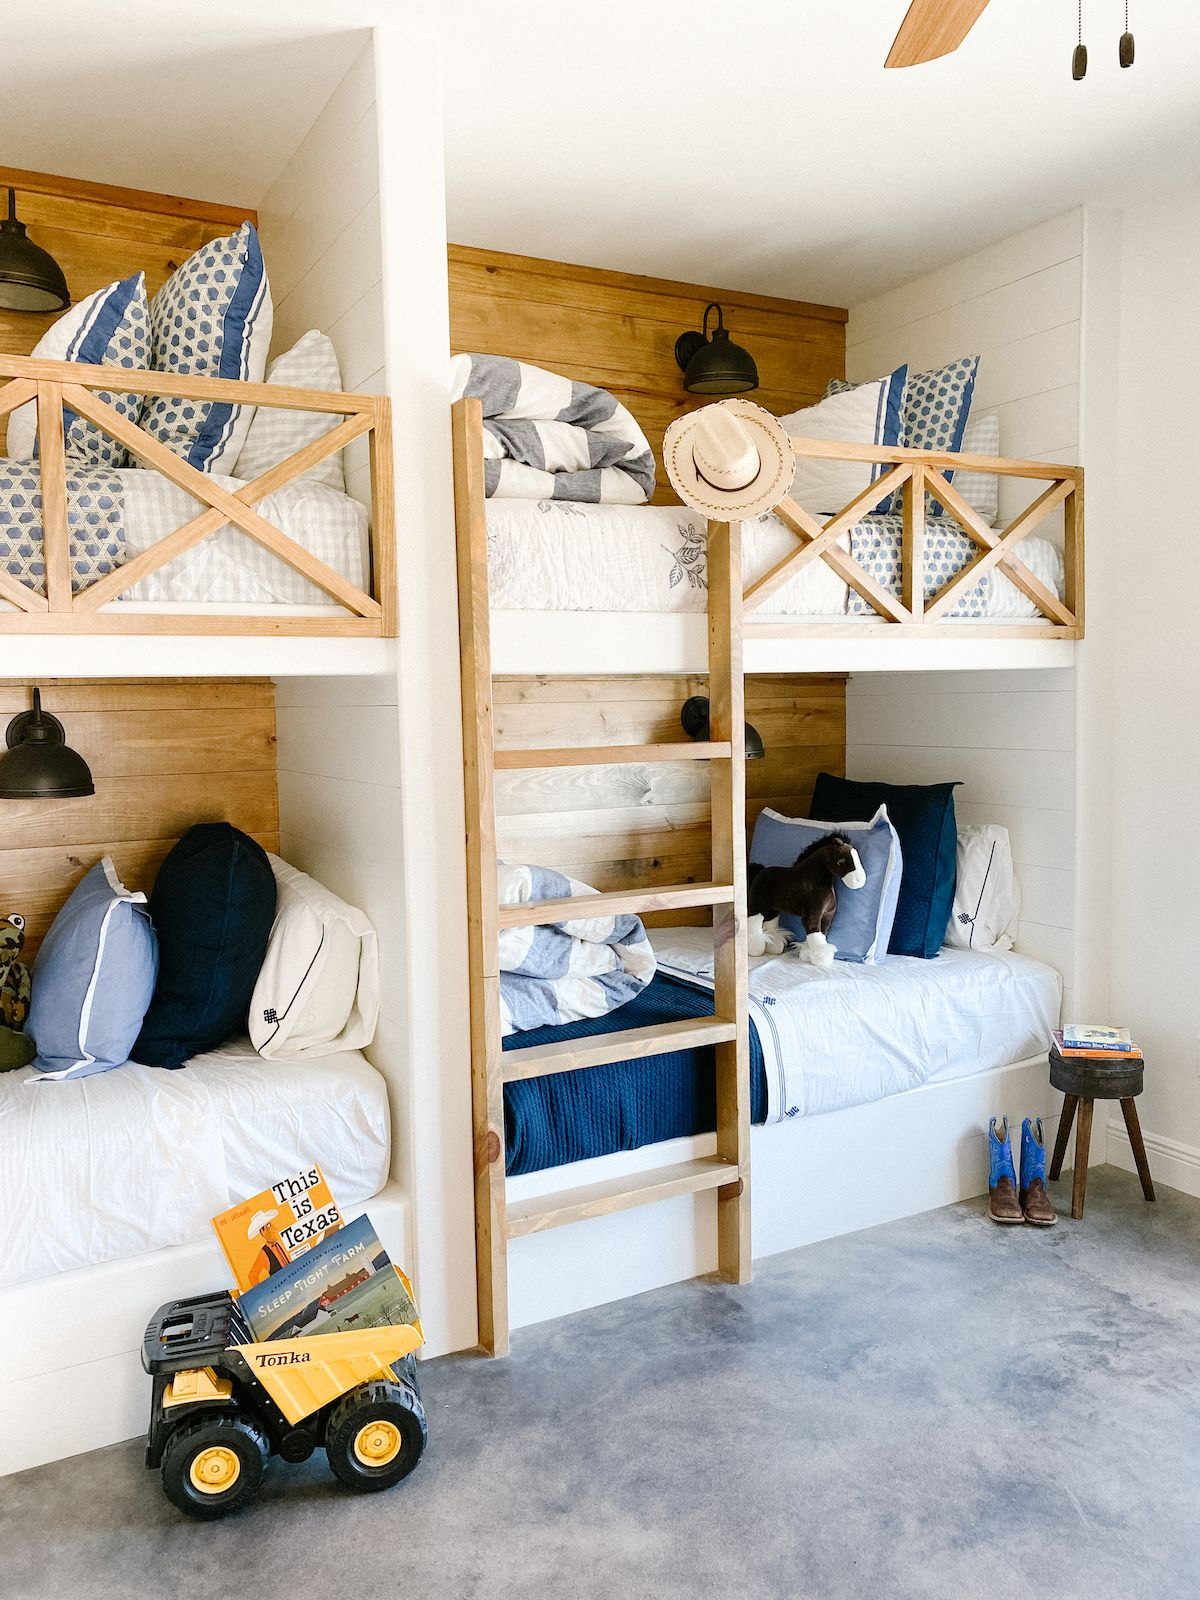 Ranch House Reveal: The Bunk Room - HOUSE of HARPER